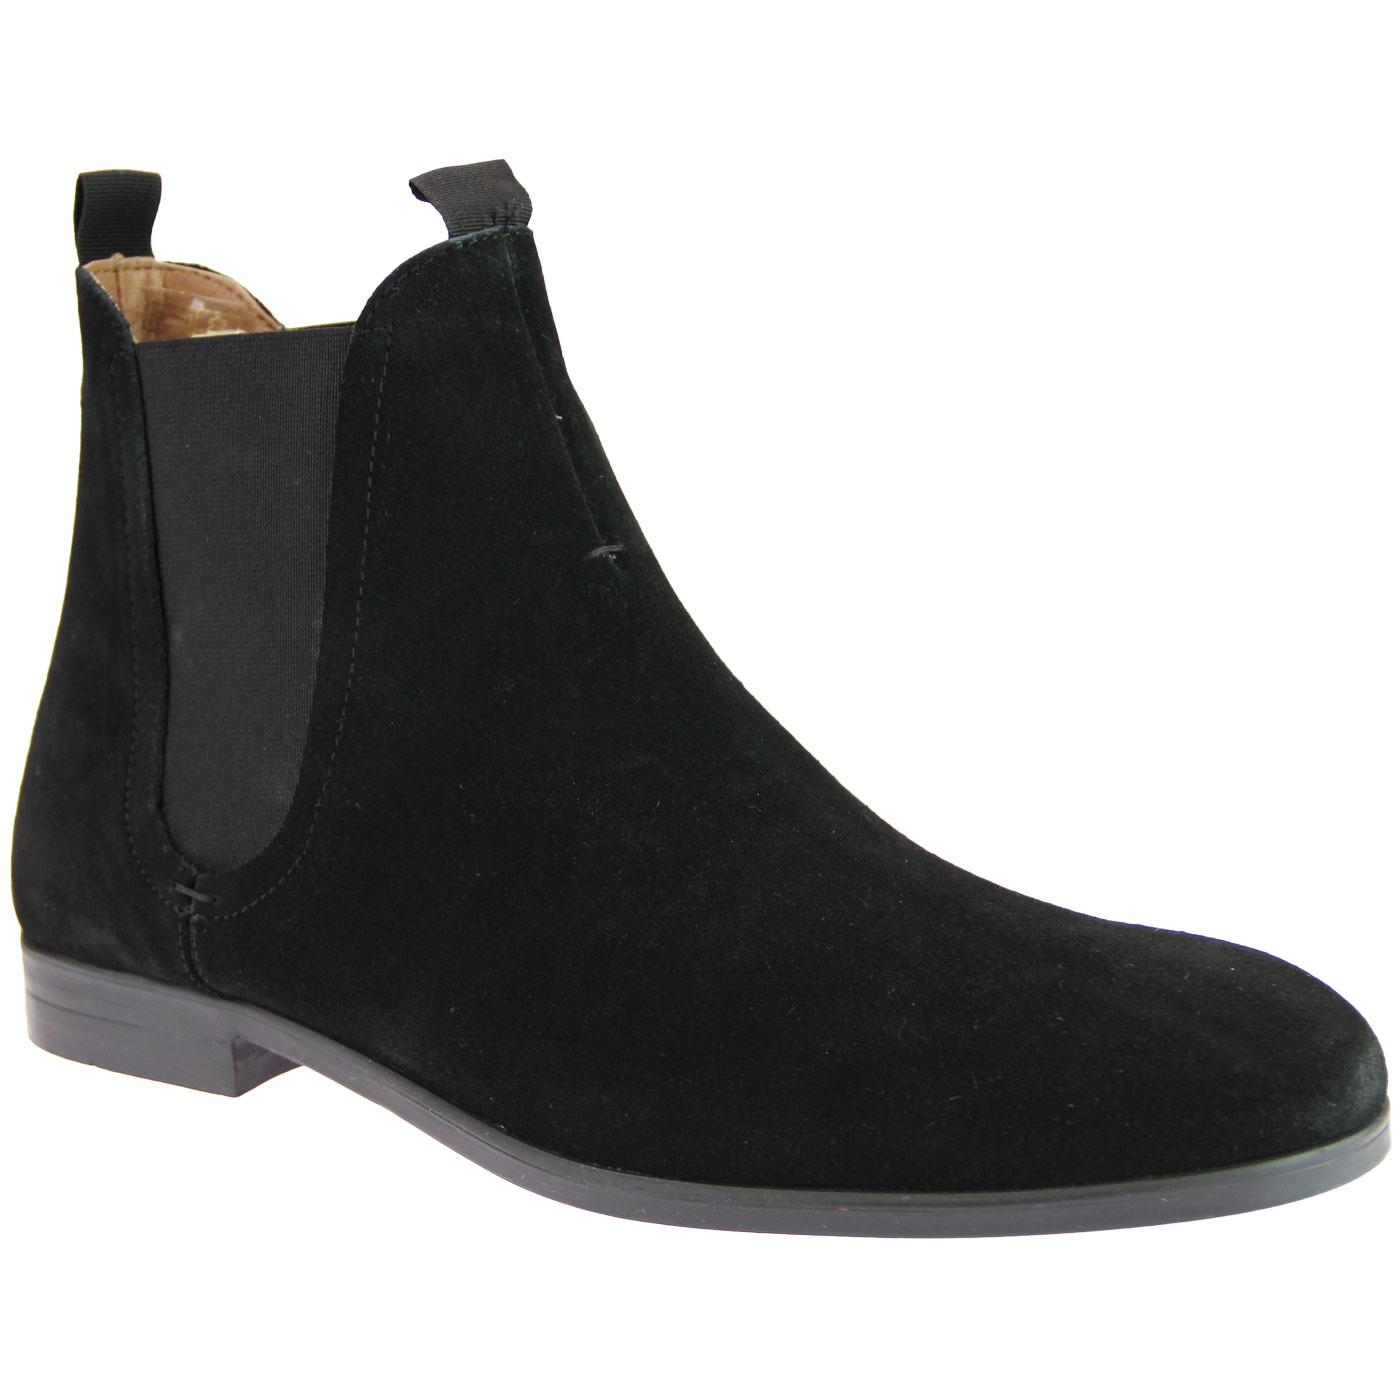 Atherstone HUDSON Mod Suede Chelsea Boots (Black)